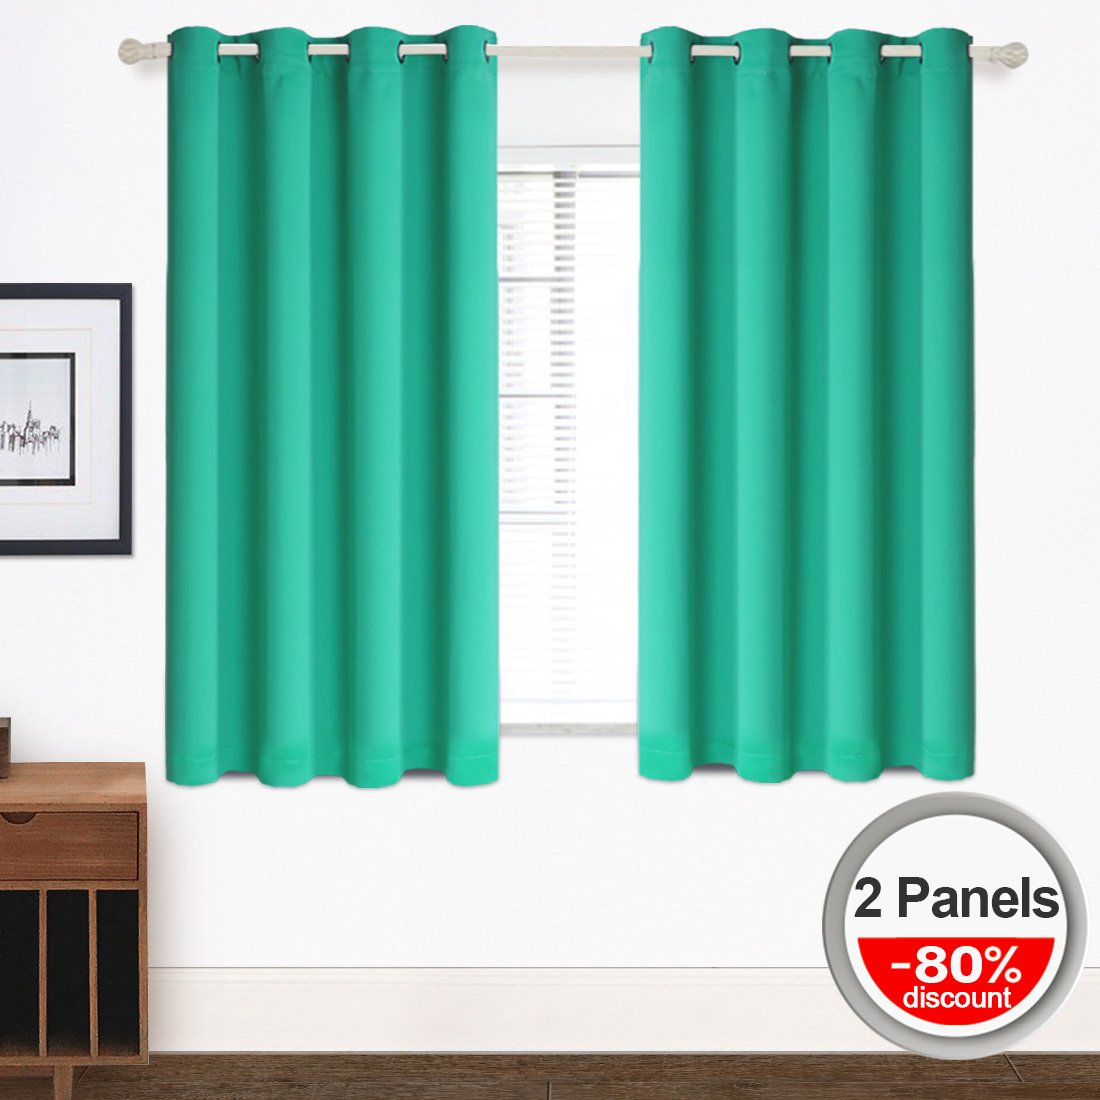 Blackout Curtains (2 Panels) O...